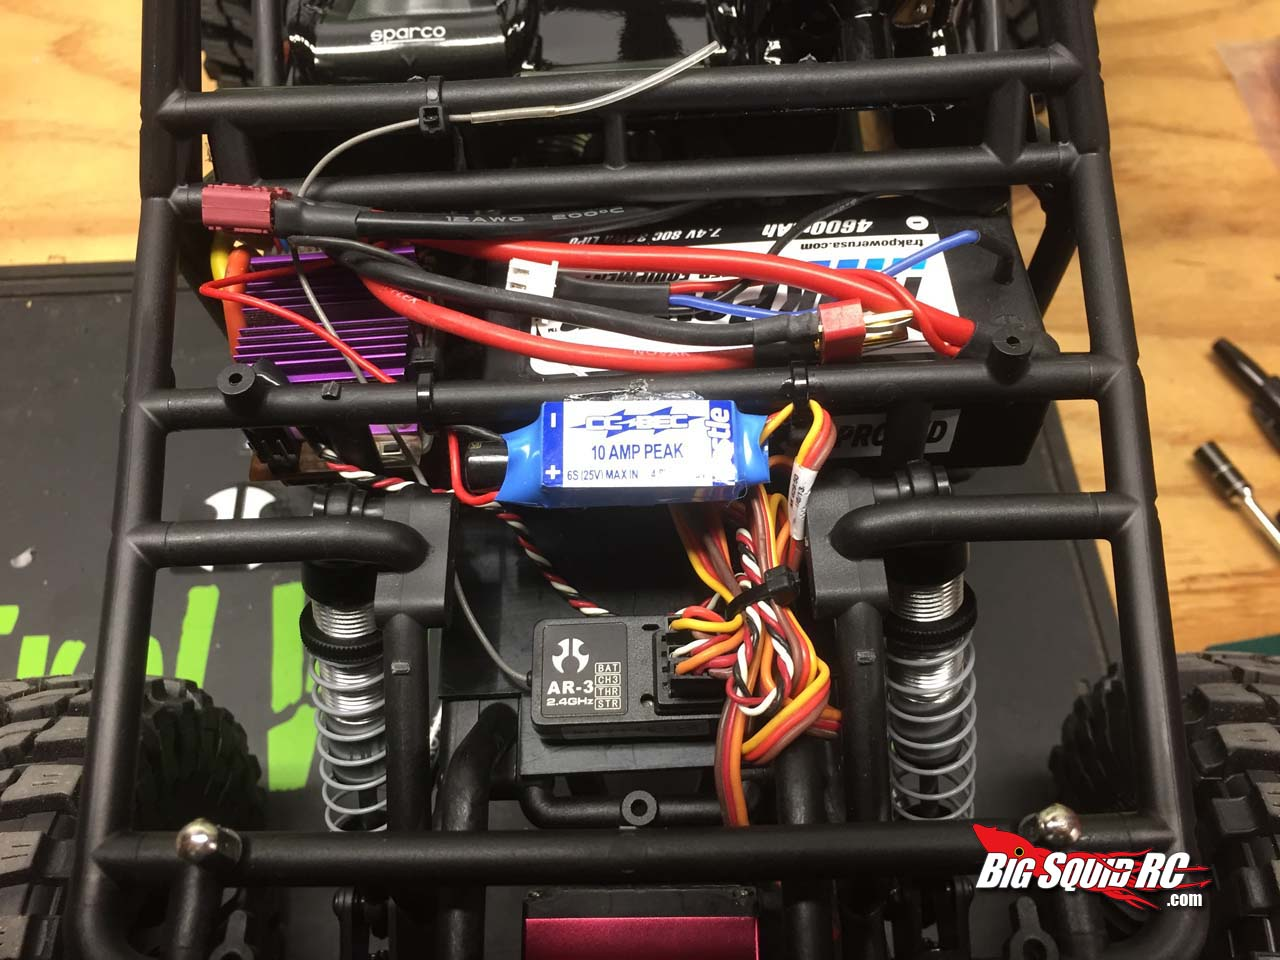 Axial Wraith Spawn Kit The Build Up 171 Big Squid Rc Rc